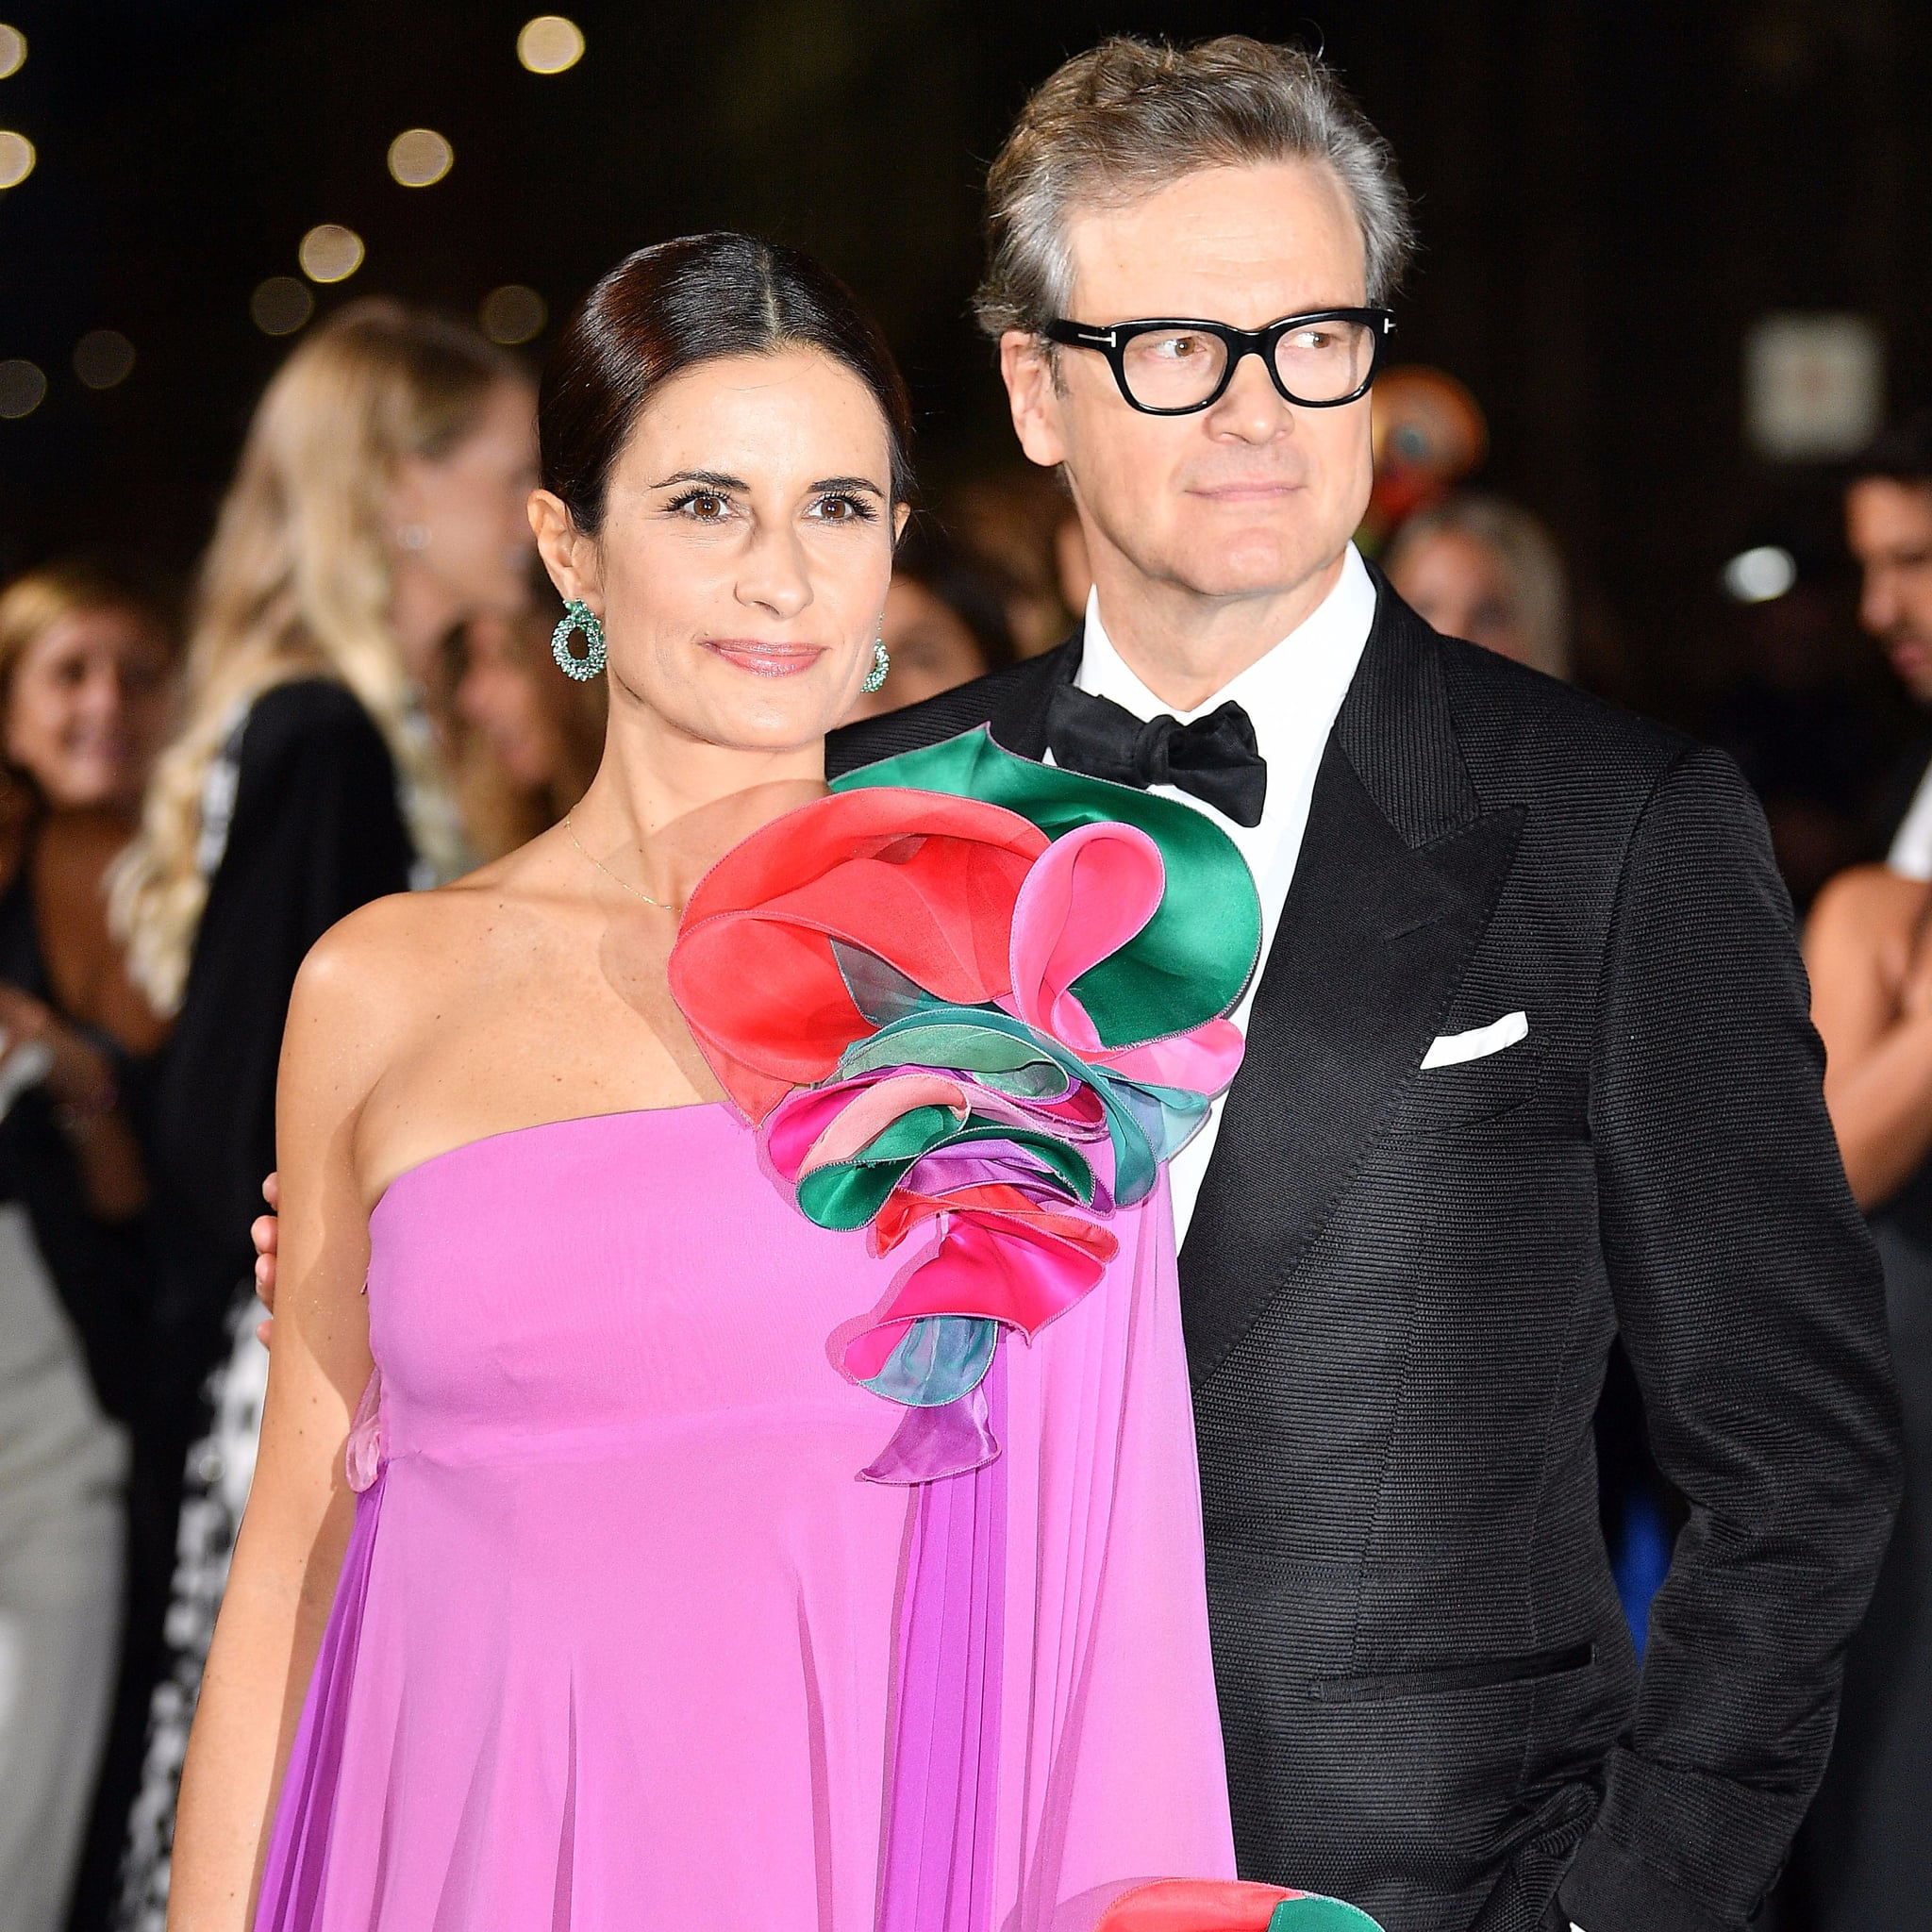 Colin Firth and Wife Livia Pictures | POPSUGAR Celebrity Photo 1